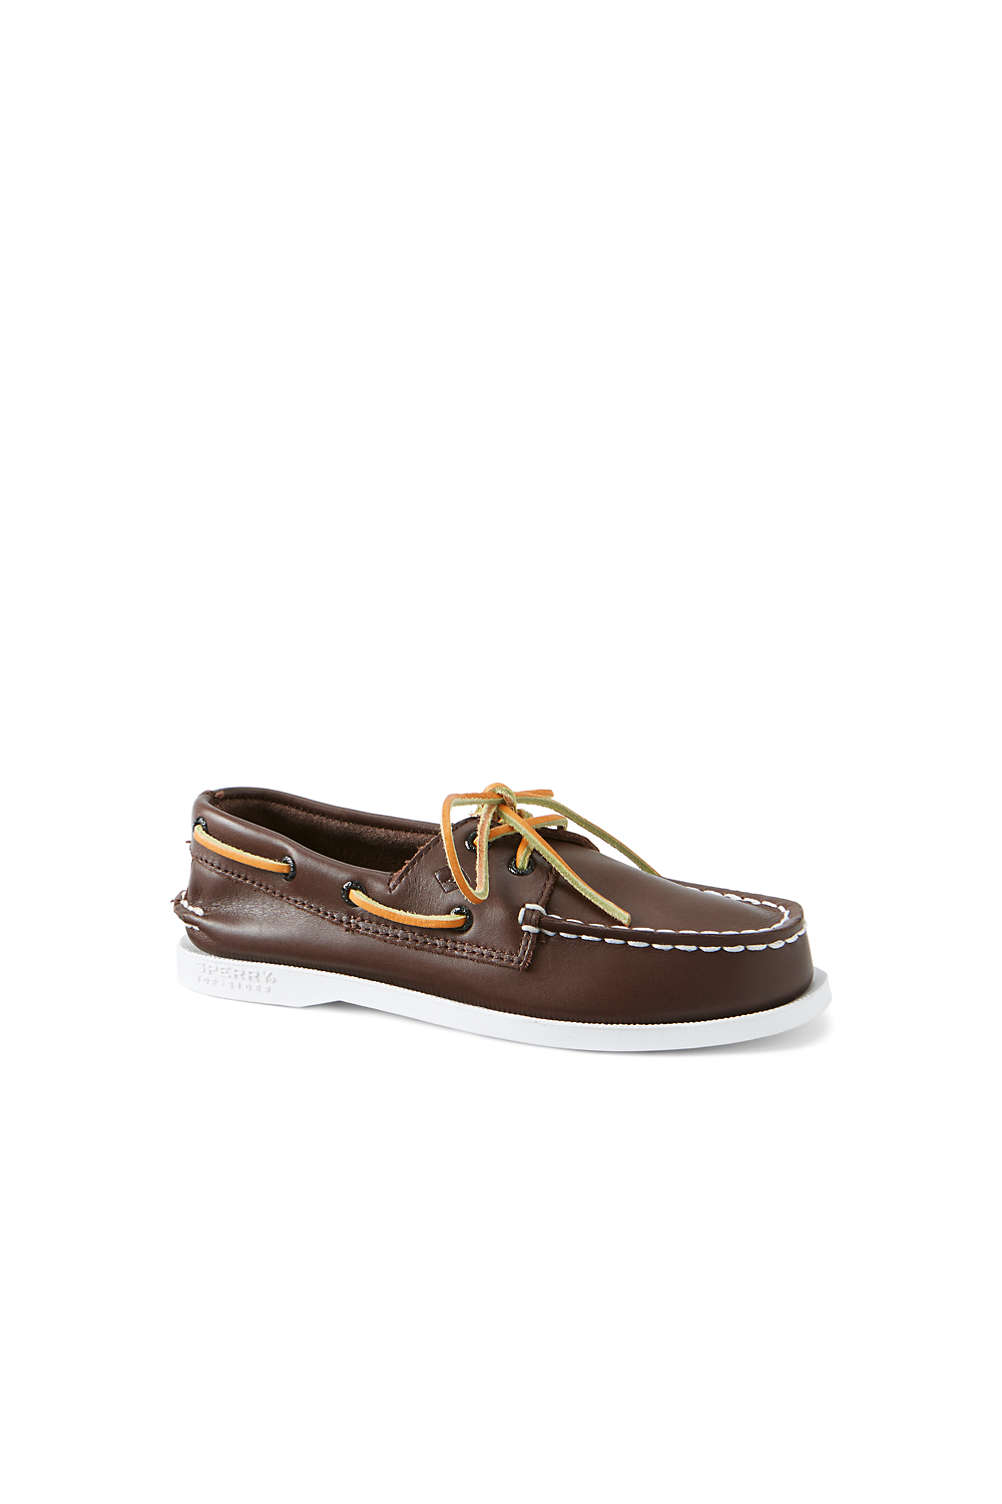 40fecb7e1f56 Kids Sperry Authentic Original Boat Shoes from Lands' End